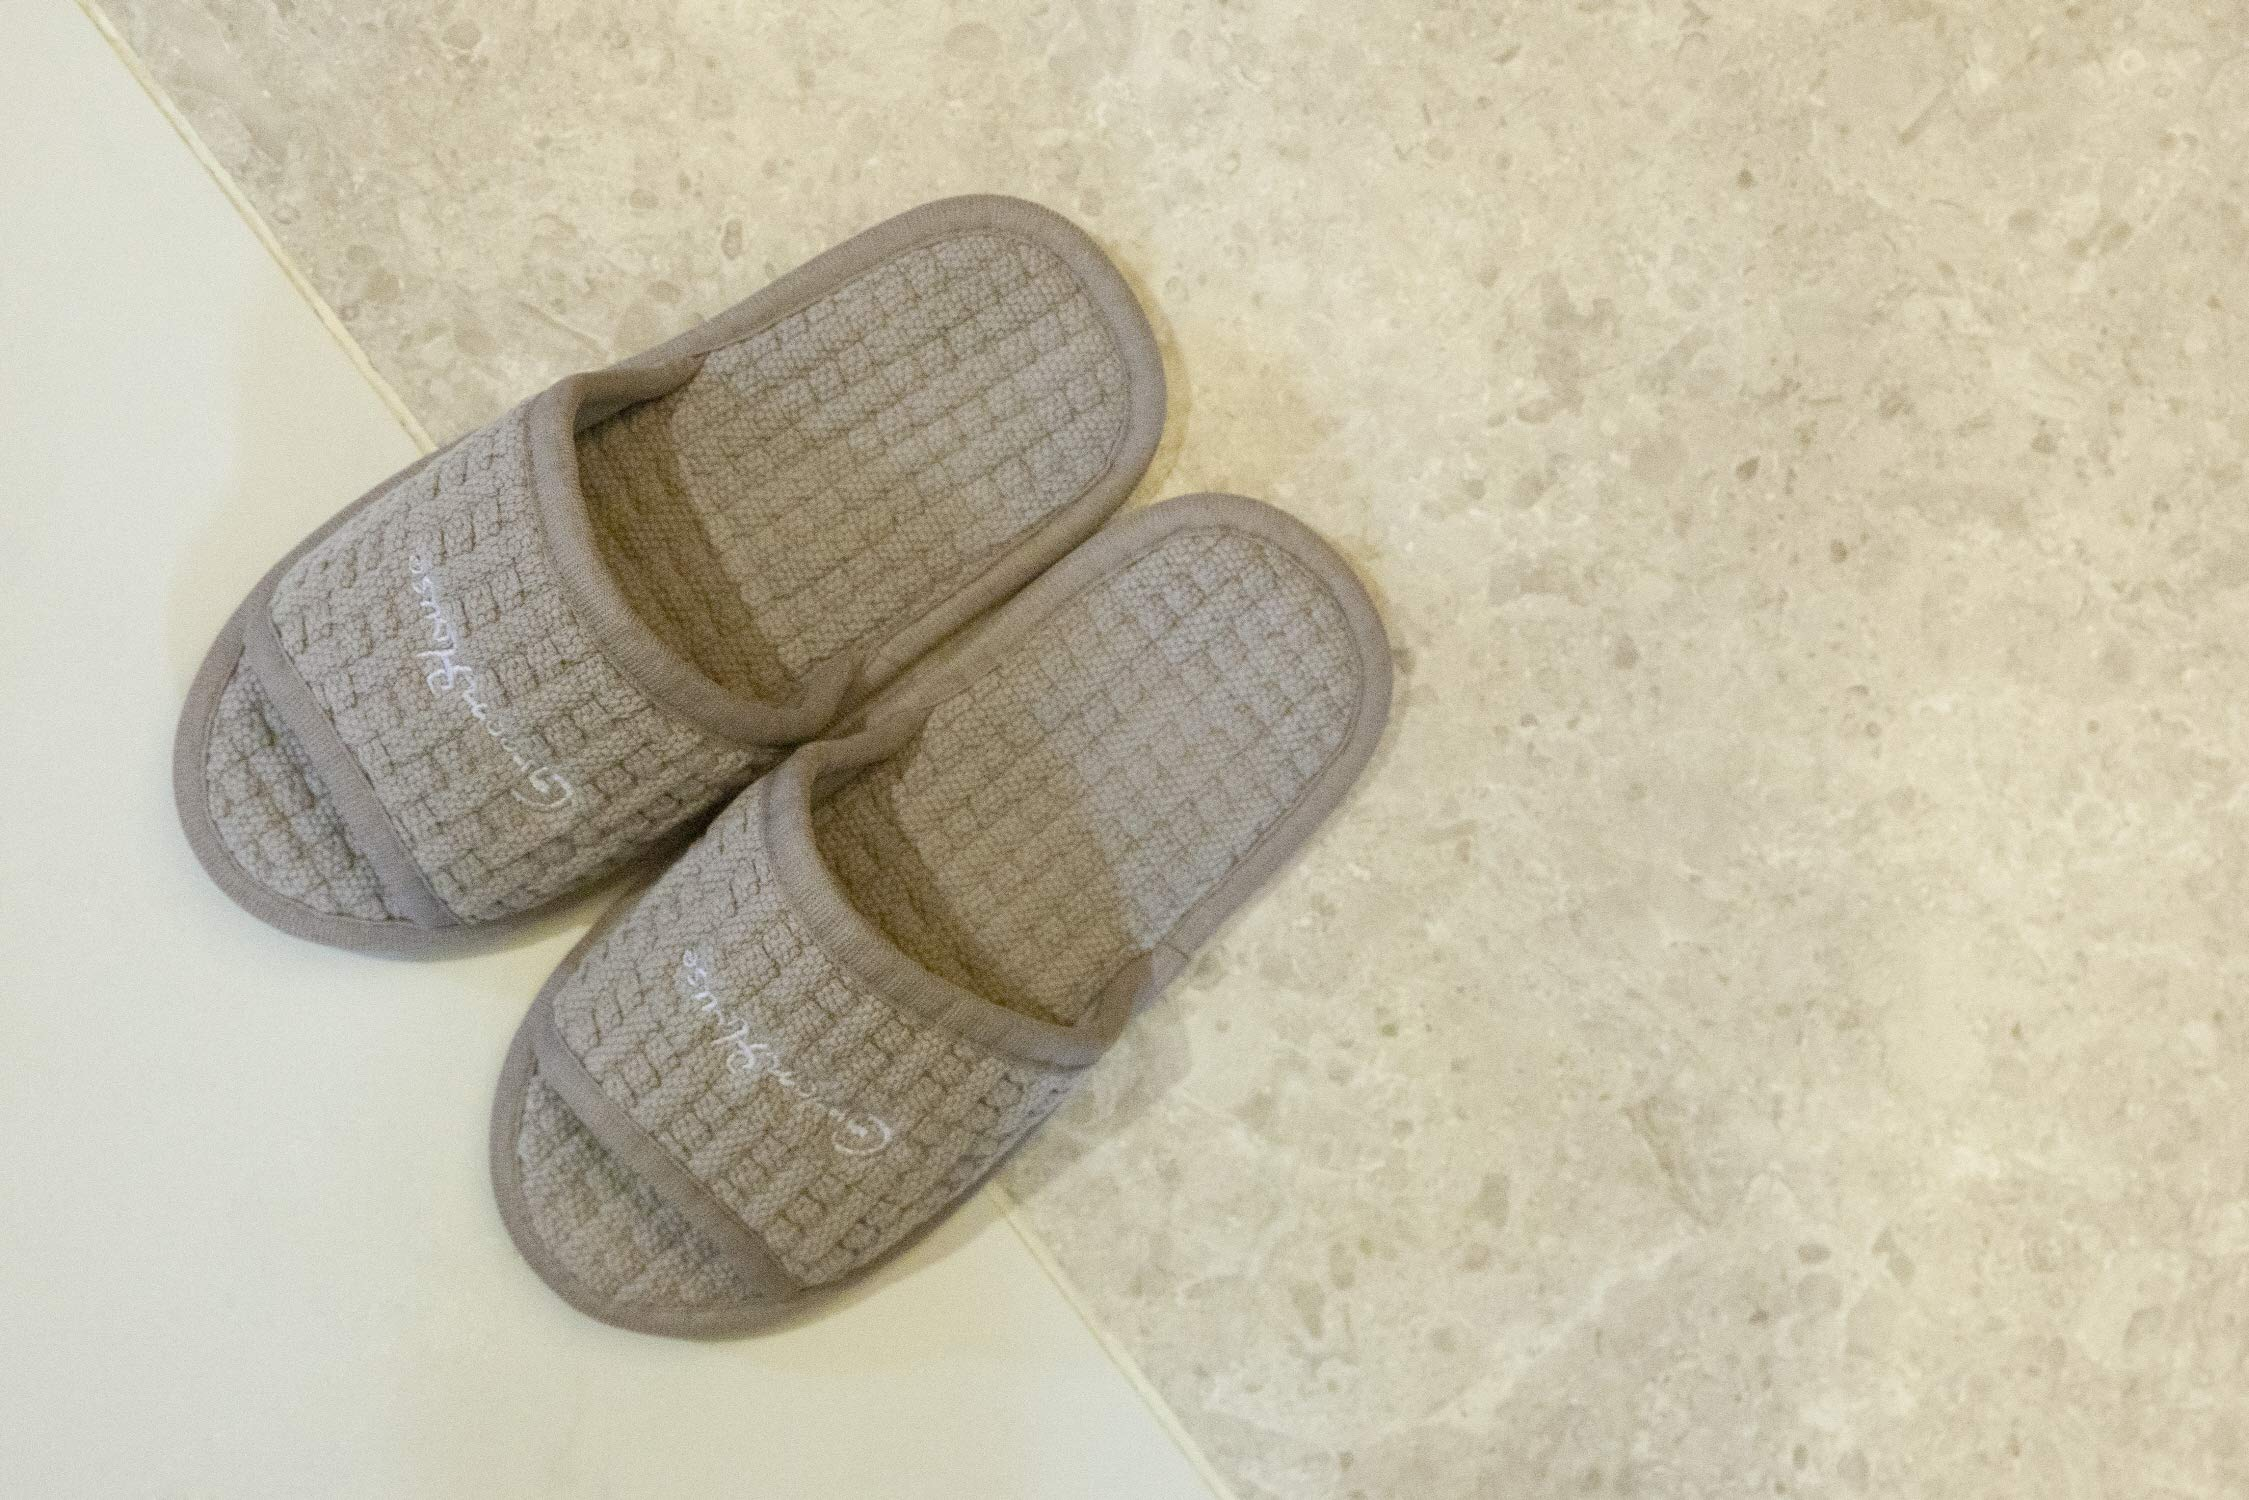 Rokgi | House Slippers for Women | Cotton House Shoes | Ladies Bedroom Cozy Washable Indoor Slippers